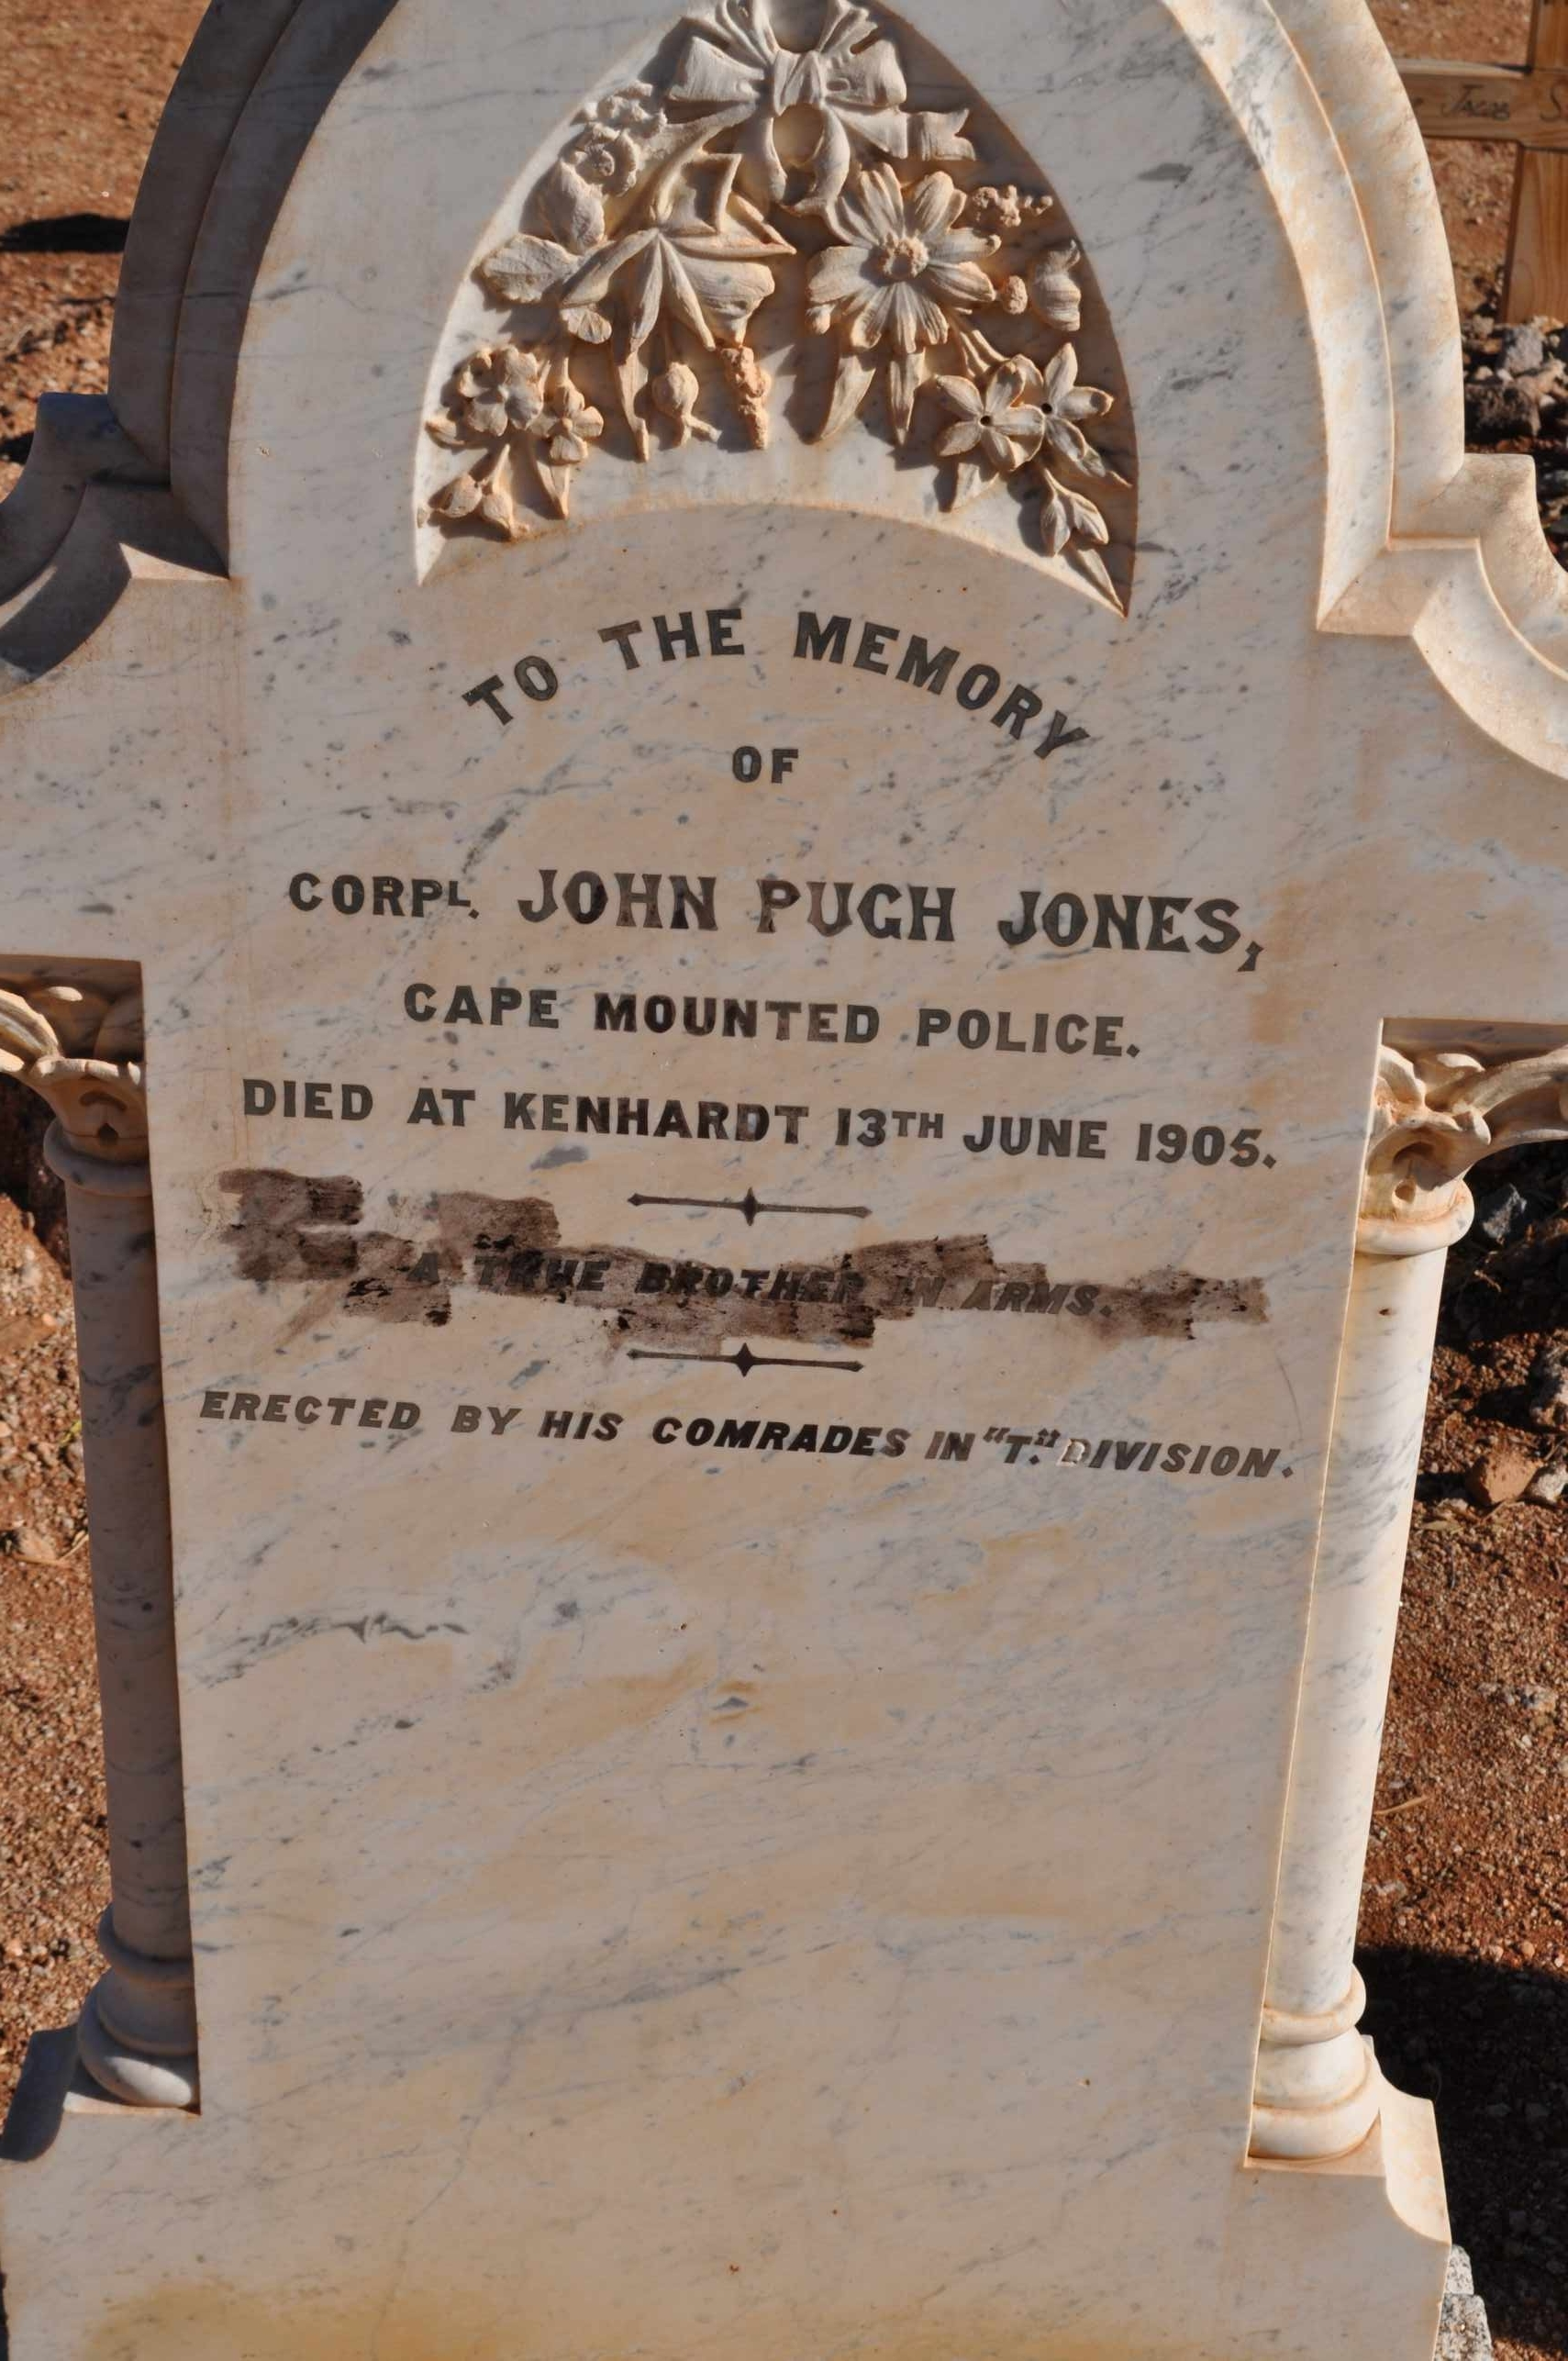 Jones, John Pugh died 13 June 1905 Cape Mounted Police